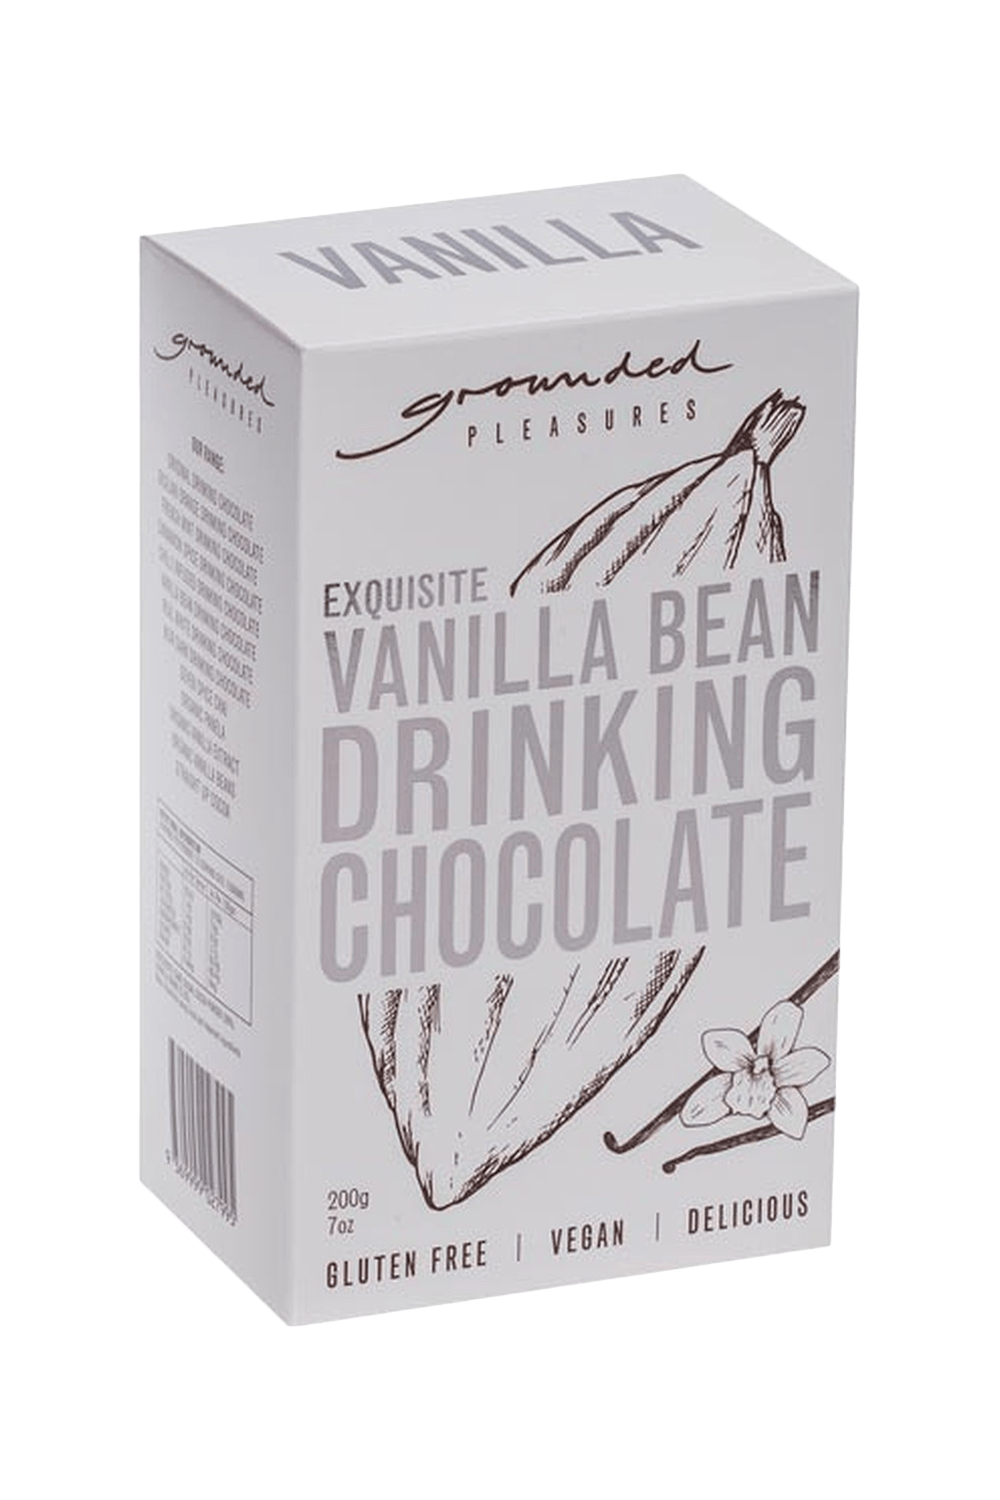 buy cafe products grounded pleasures drinking chocolate vanilla bean drinking chocolate